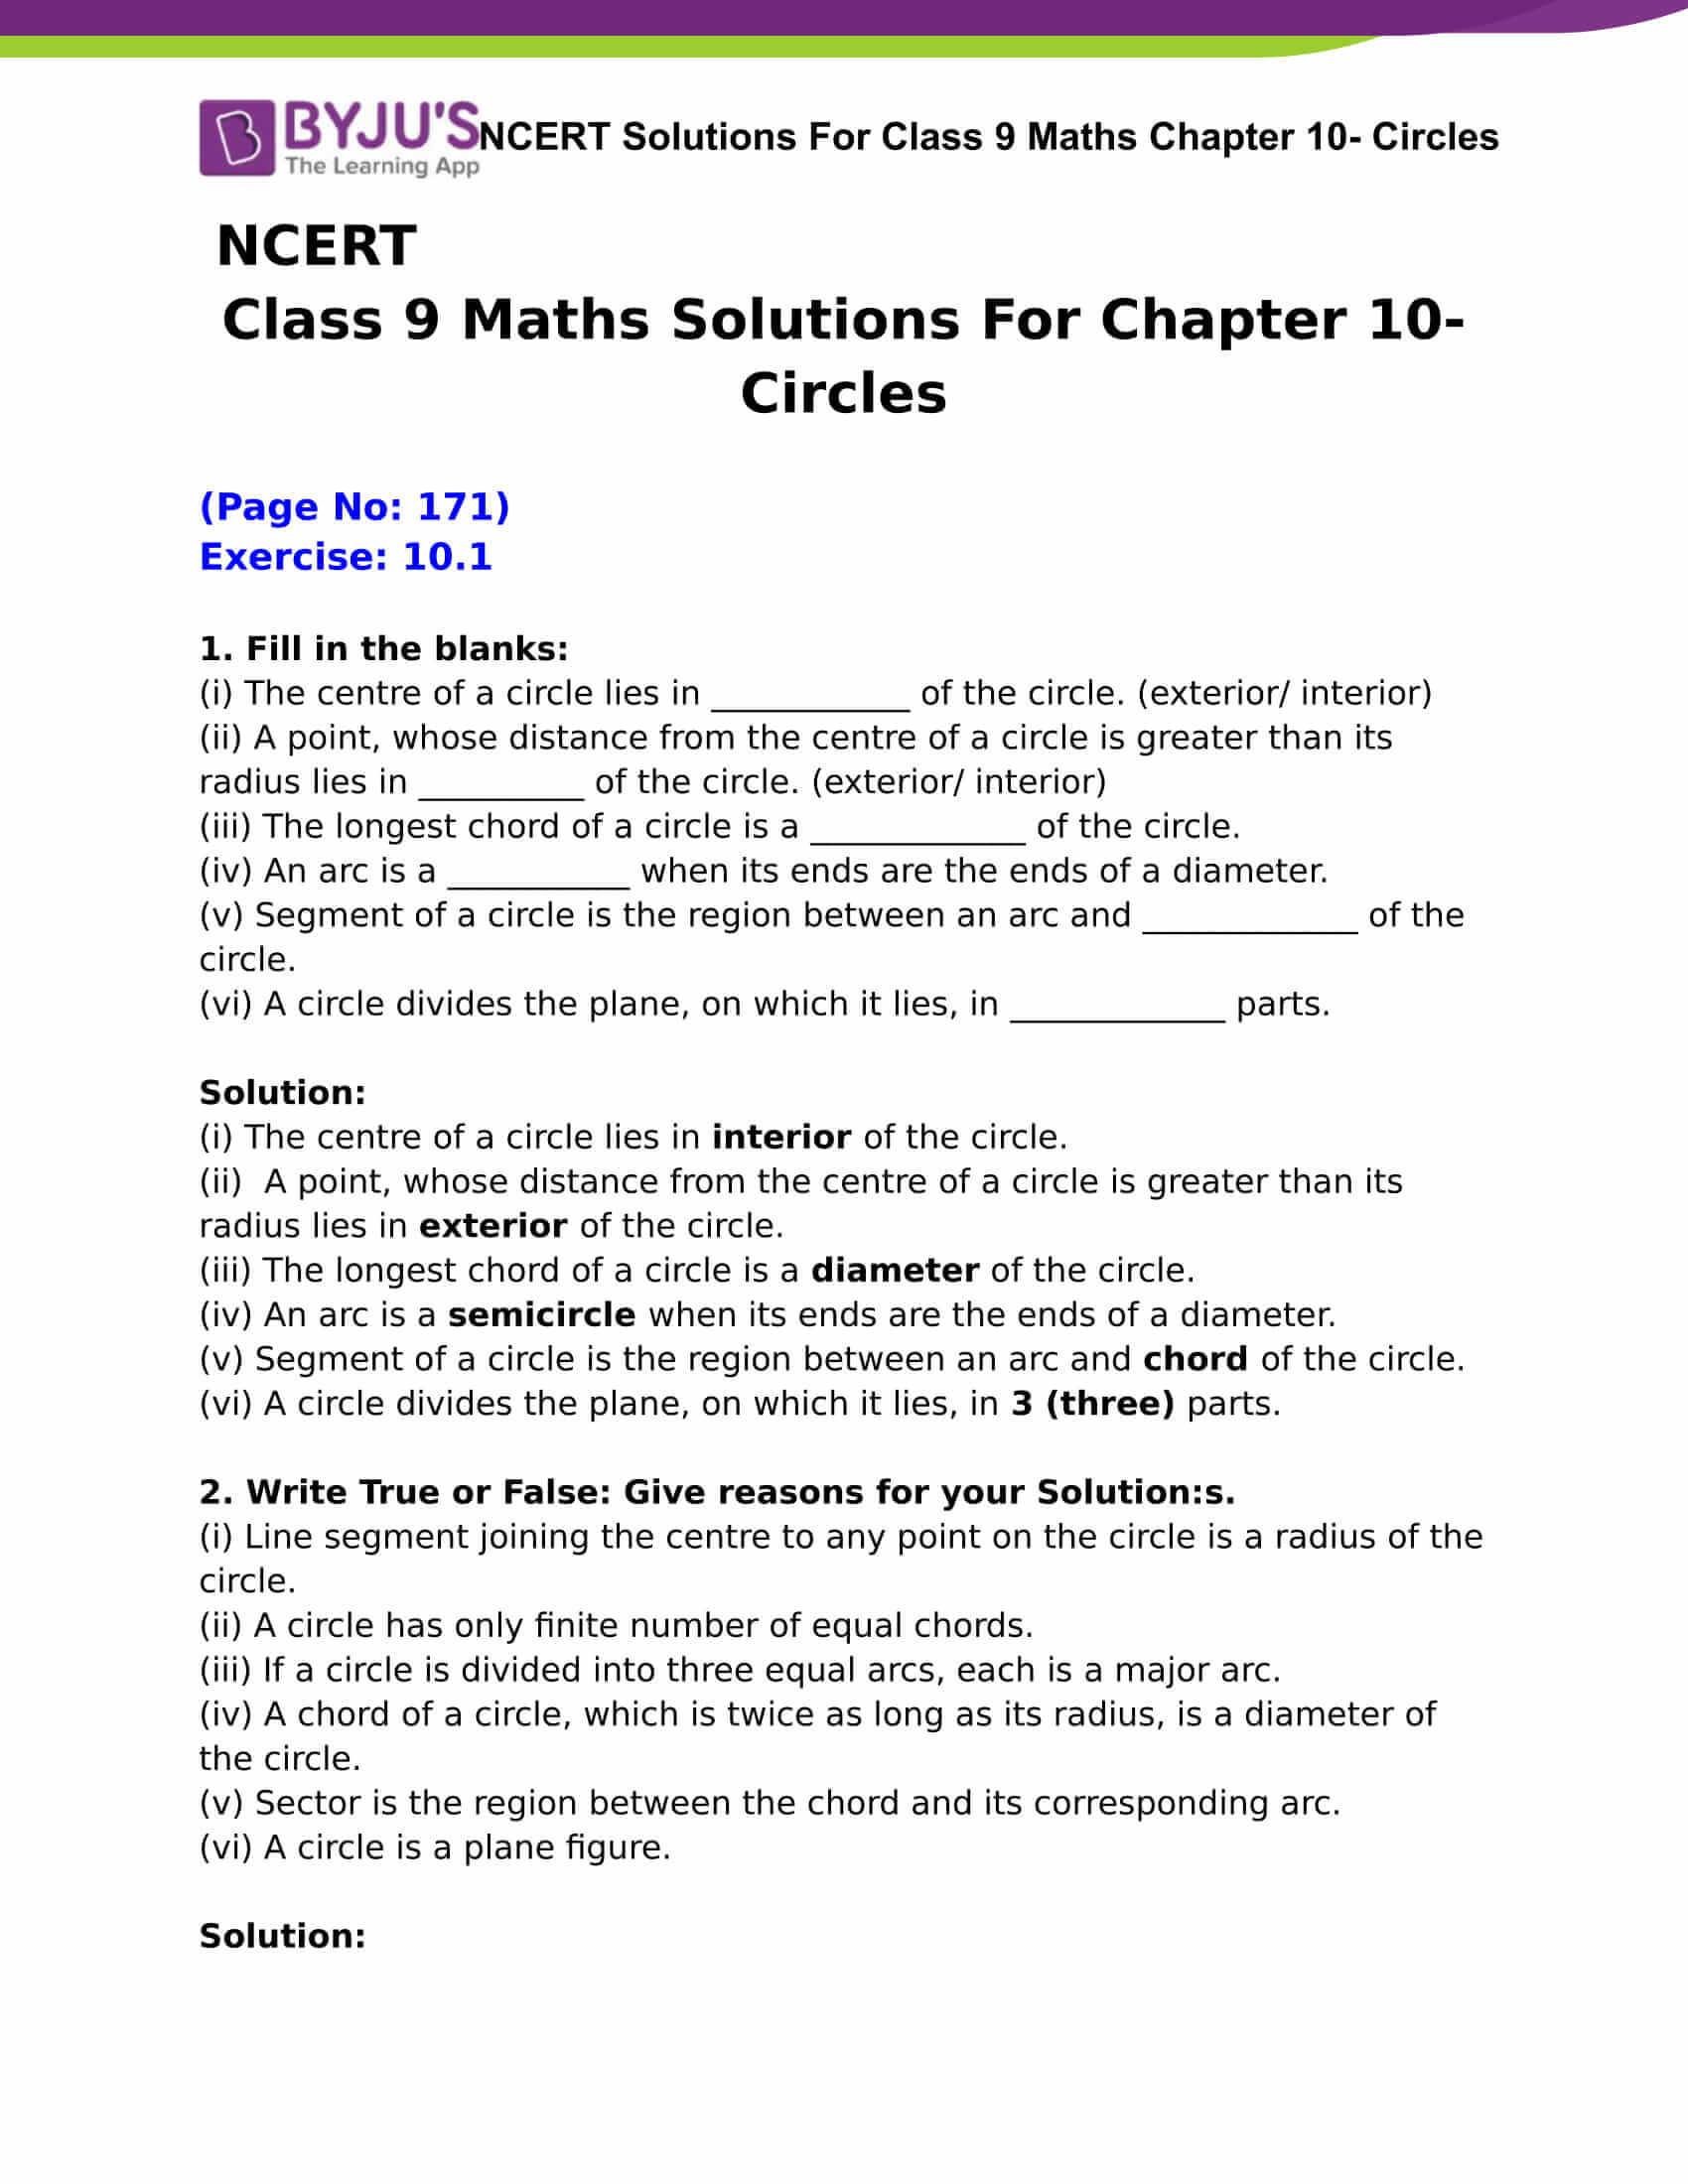 NCERT Solutions Class 9 Maths Chapter 10 Circles Free PDF